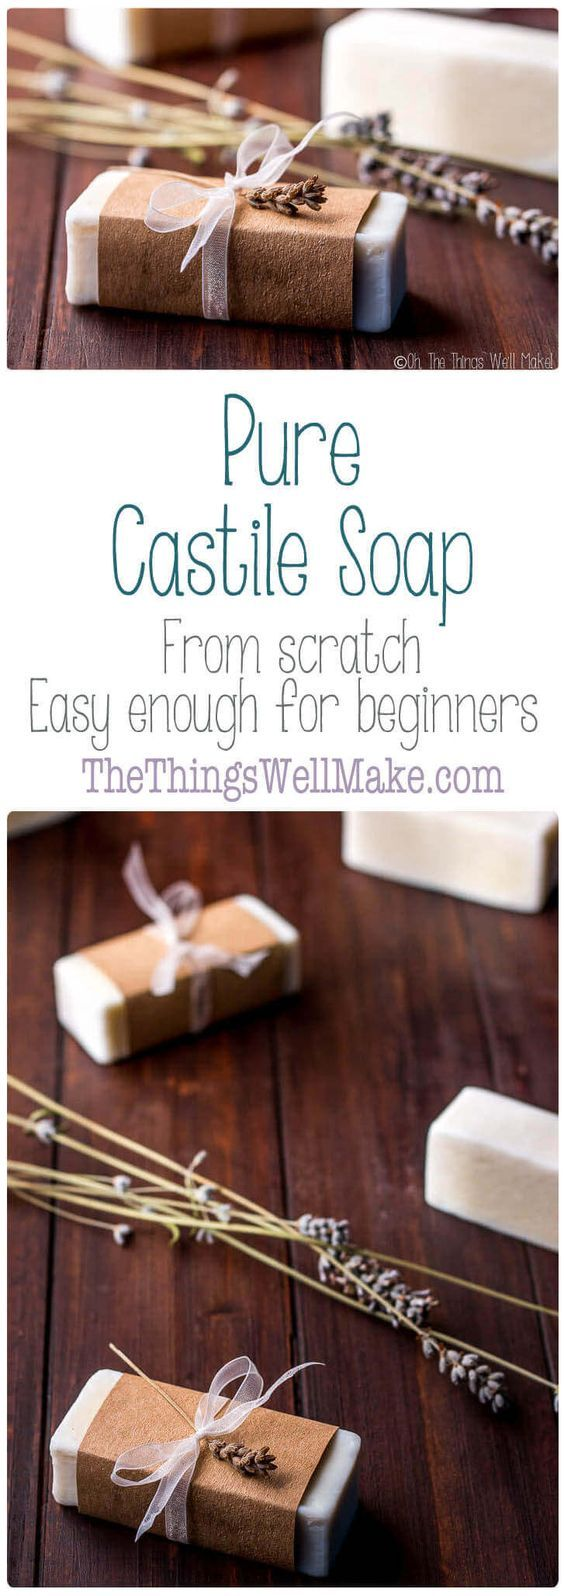 Made using only olive oil, pure Castile soap is a mild, conditioning soap that is gentle enough to use on face and body. #CastileSoap #soap #easy #SoapRecipe